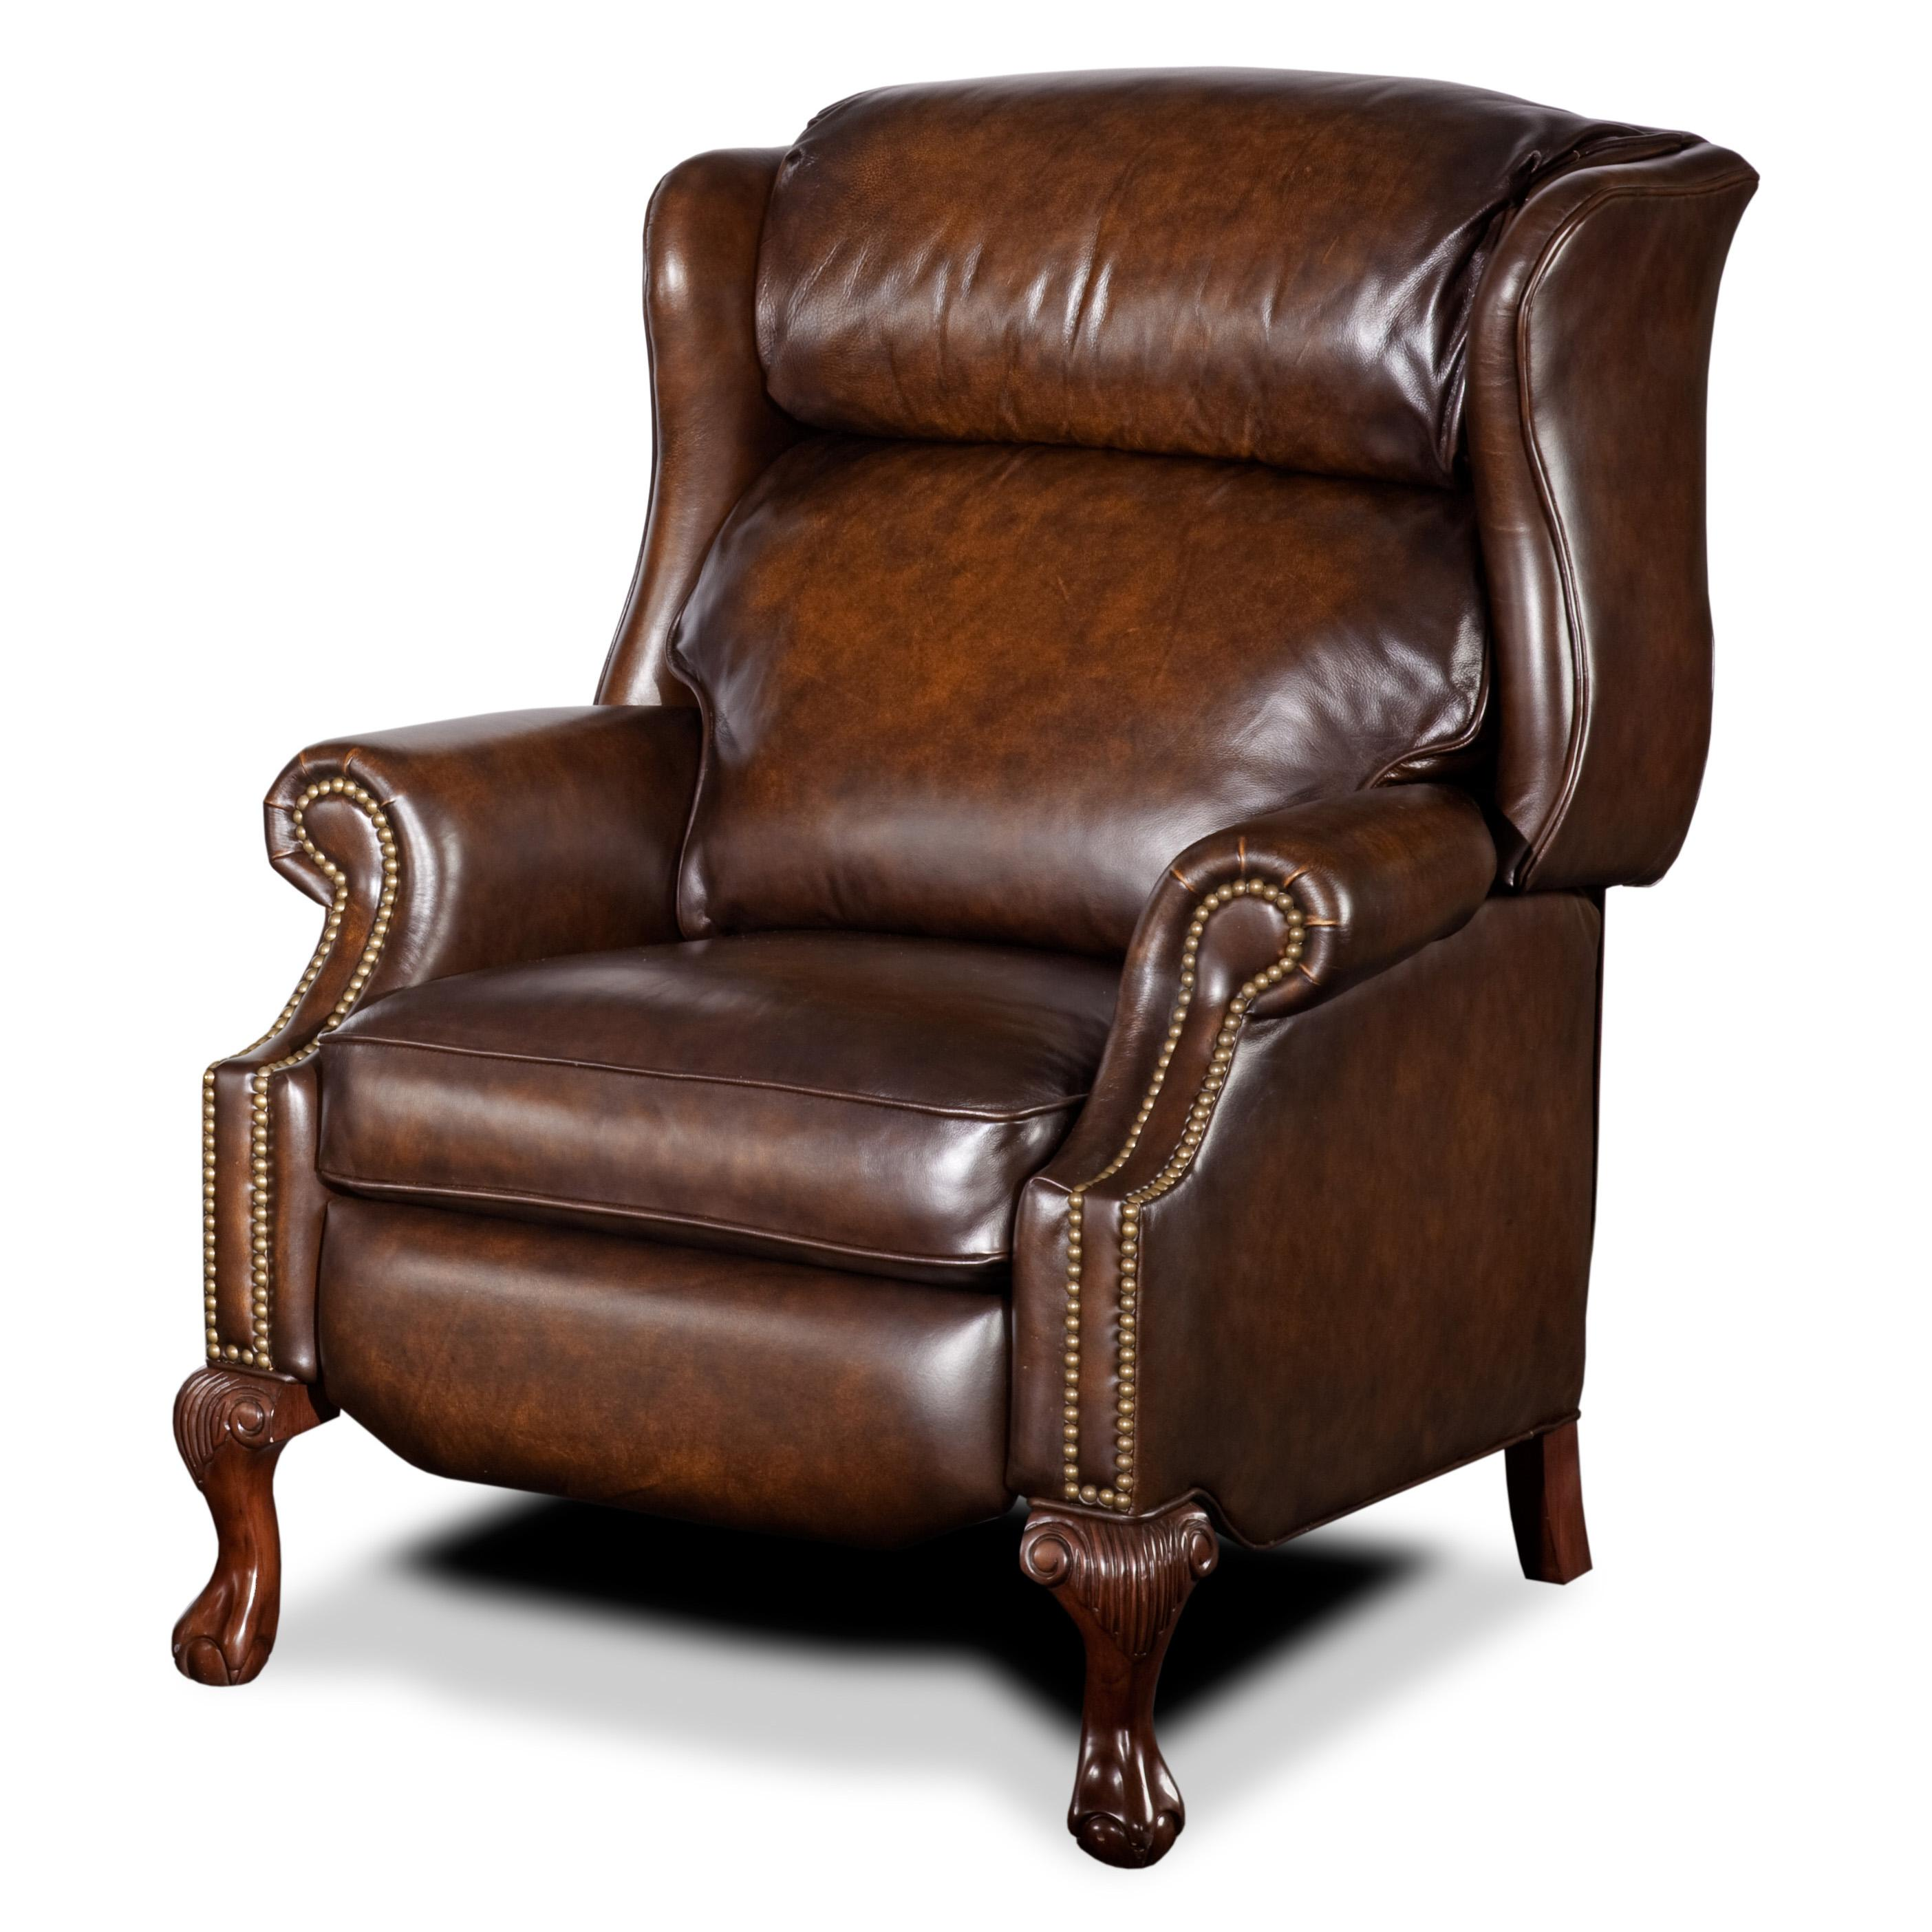 Reclining Chairs High Leg Wing Recliner by Hooker Furniture  sc 1 st  Furniture Dealer Locator - Find your furniture & Hooker Furniture Reclining Chairs High Leg Wing Recliner - AHFA ... islam-shia.org